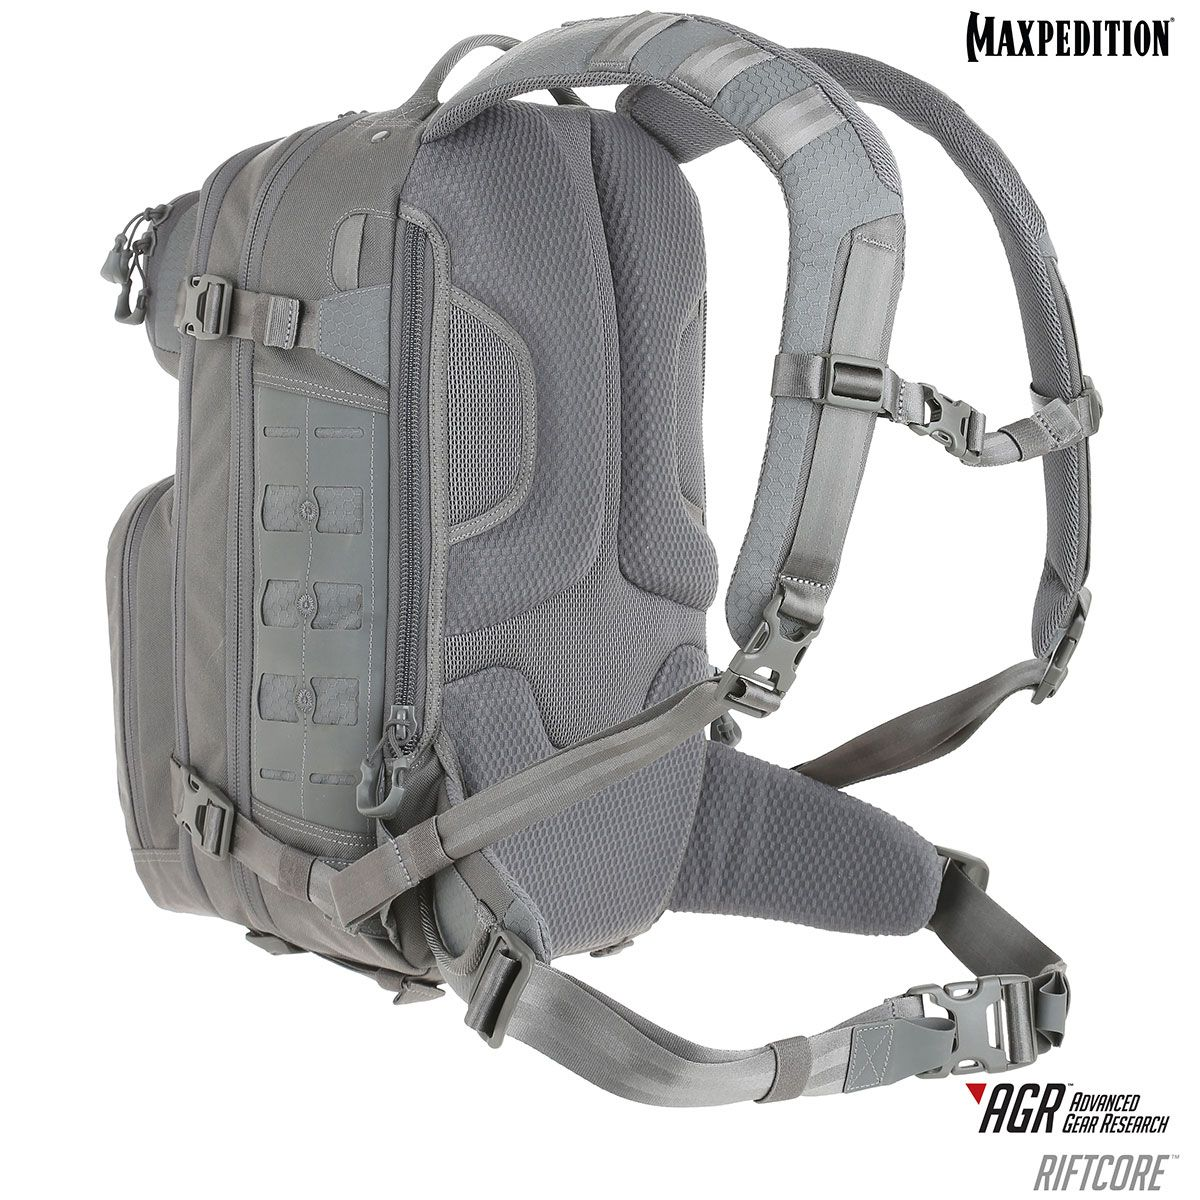 Maxpedition RFCGRY RIFTCORE Backpack Gray